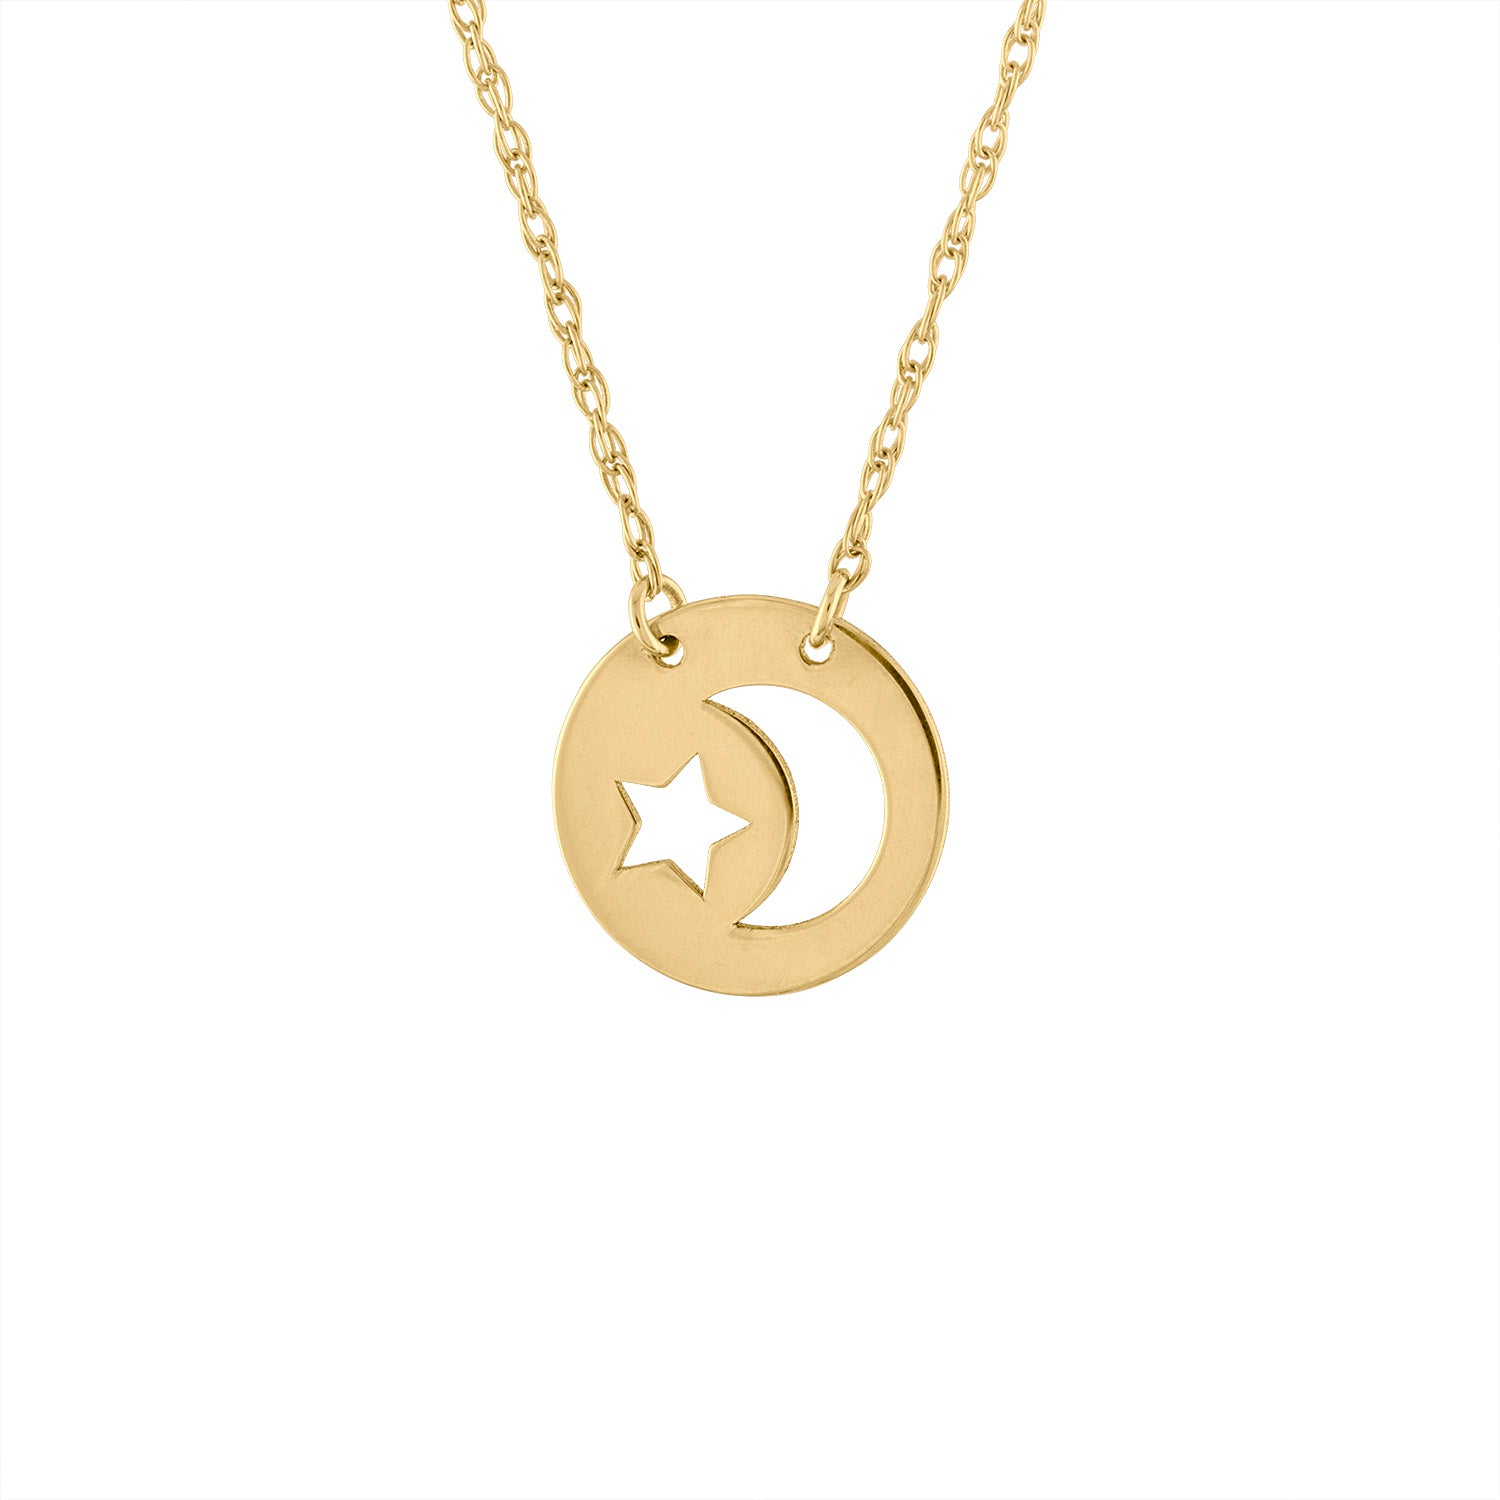 14KT GOLD CUT OUT STAR MOON DISK NECKLACE